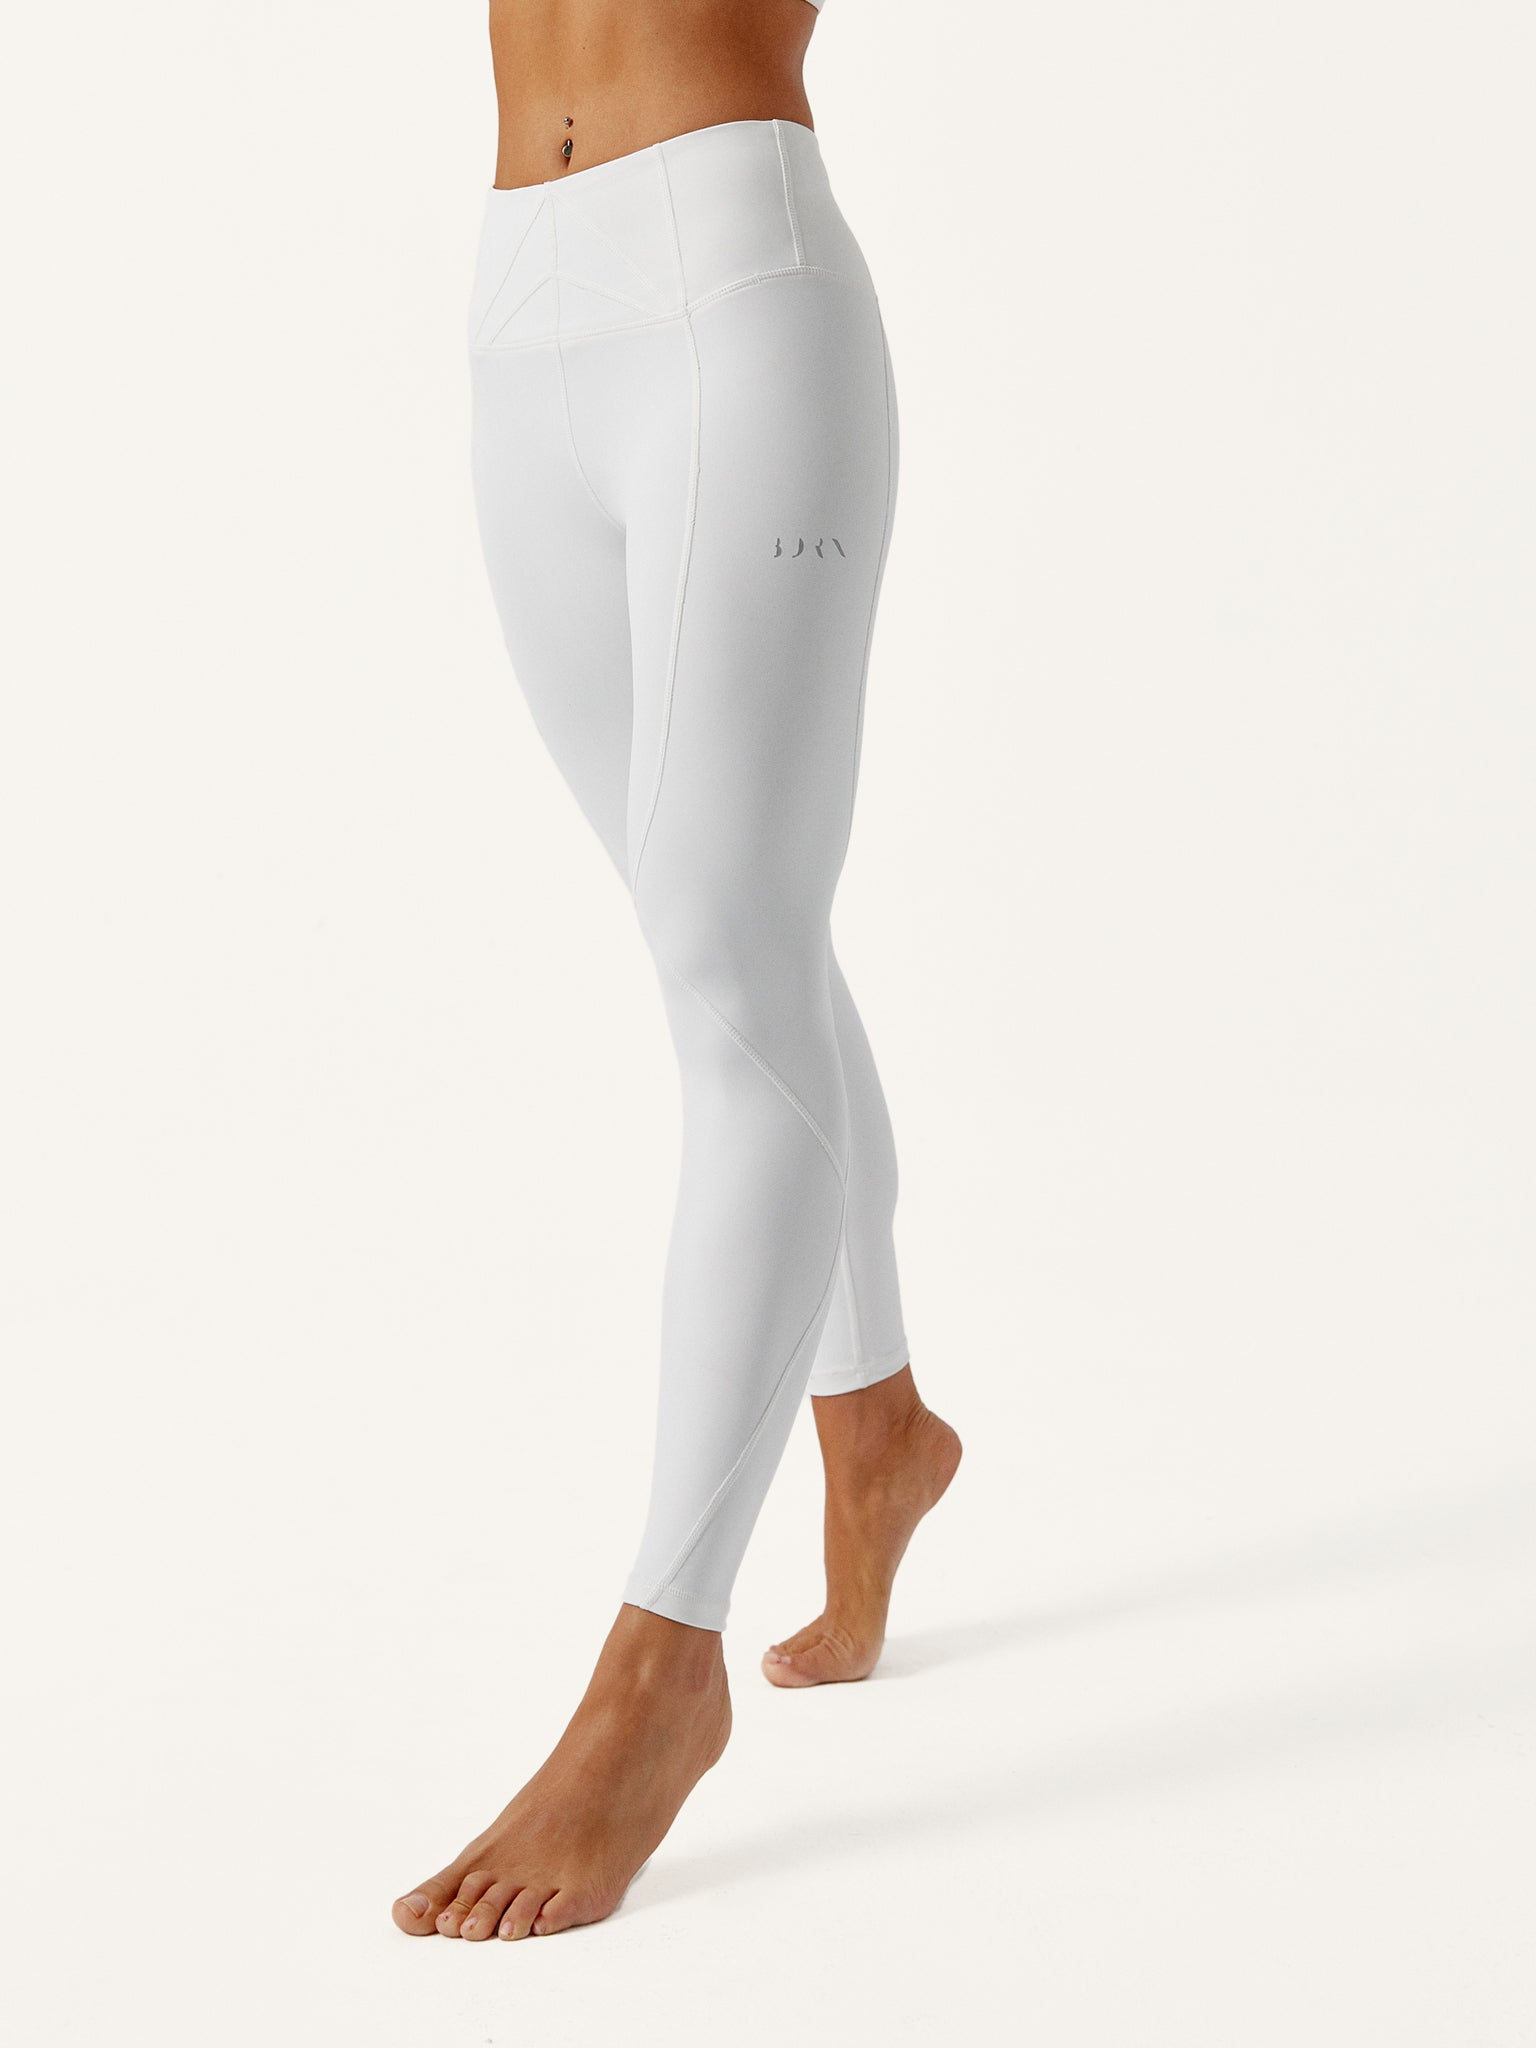 Legging Dhana Off White